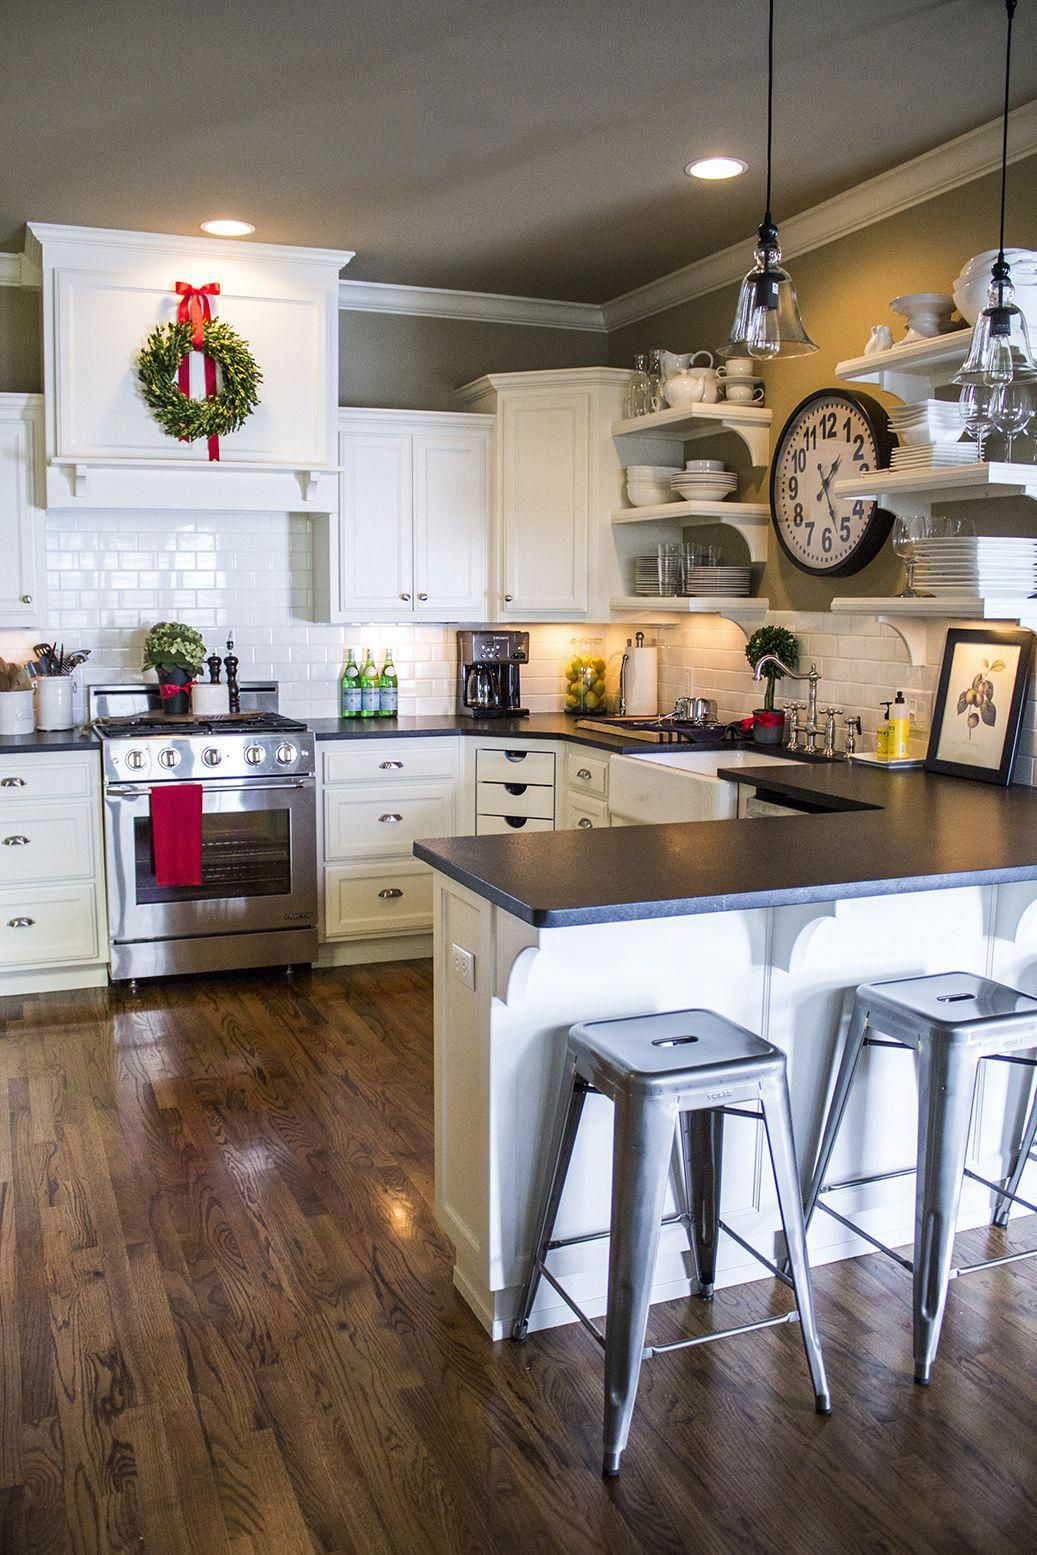 this is my dream kitchen - farmhouse sink, open shelves for dining set, subway tile, white